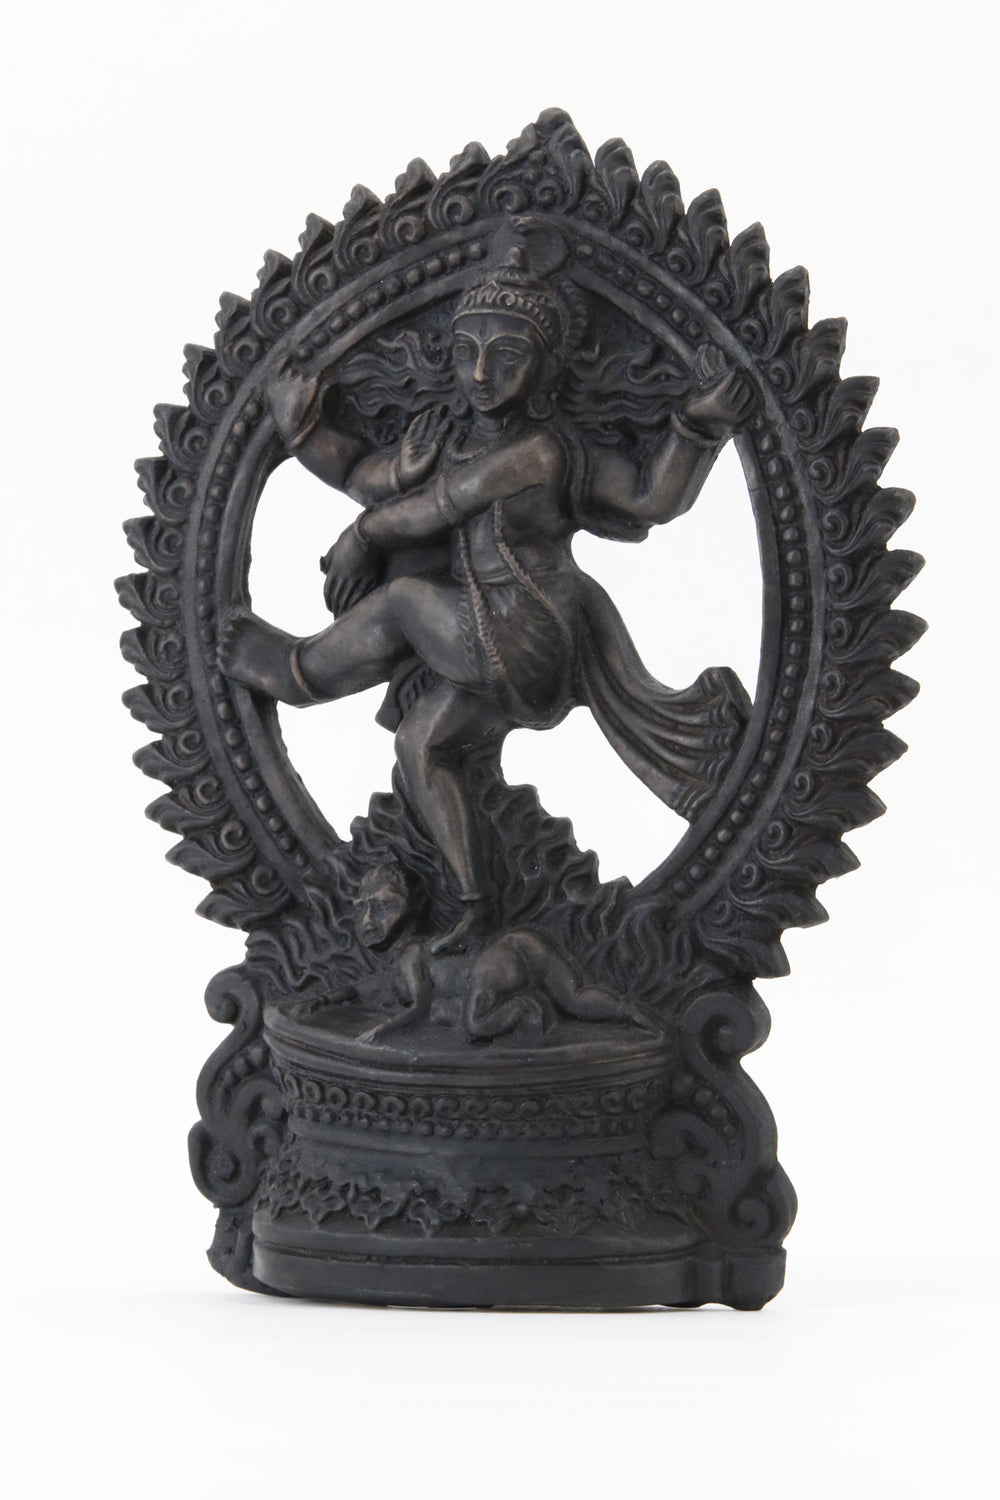 SHIVA DANCING POSE STATUE DARK SIDE 2 VIEW